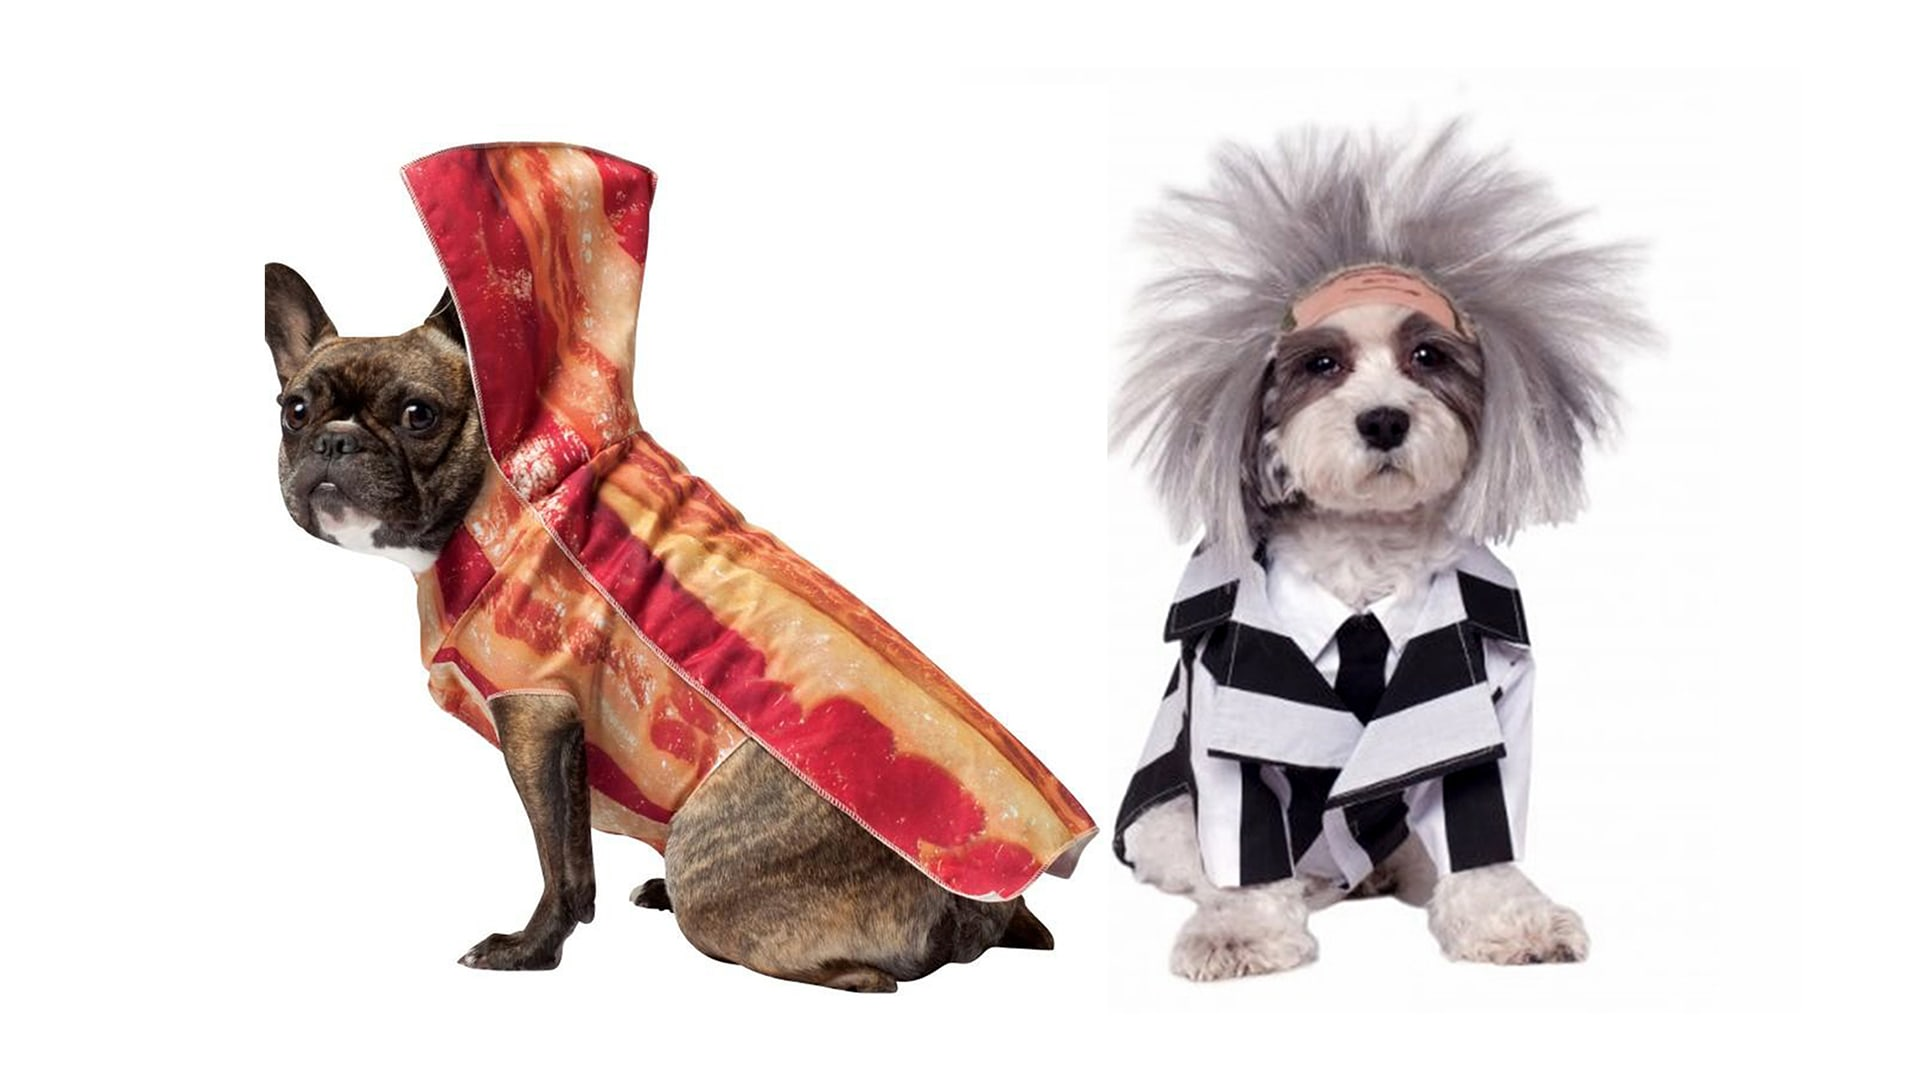 Halloween Dog Costume Ideas 32 Easy Cute Costumes For